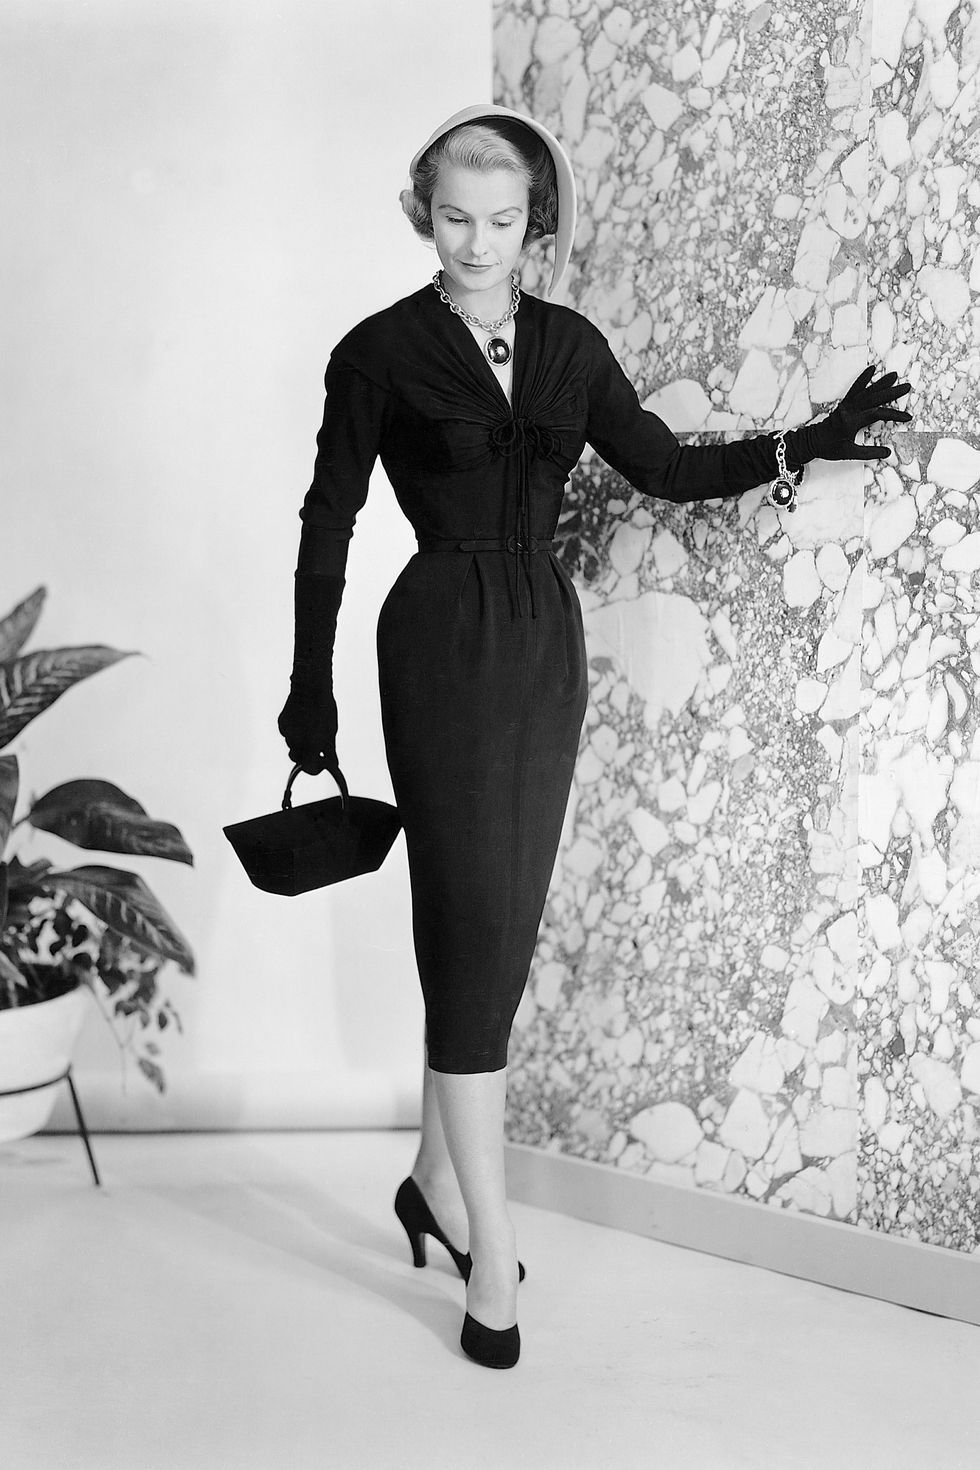 bc4dd3c84815 The Best Fashion Photos From The 1950s | love vintage | Fashion ...